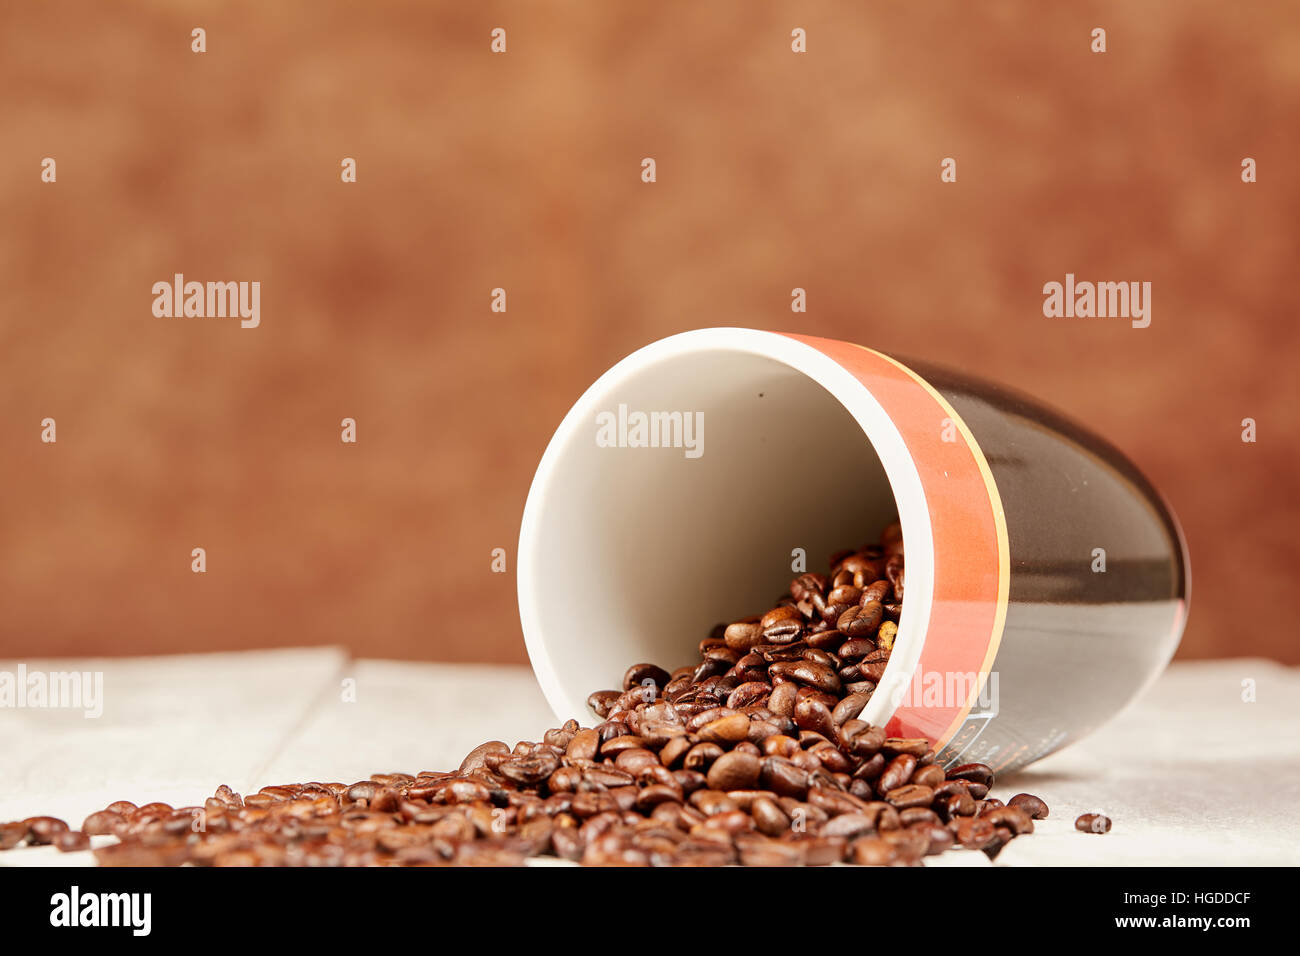 Table with scattered coffee beans and brown background - Stock Image